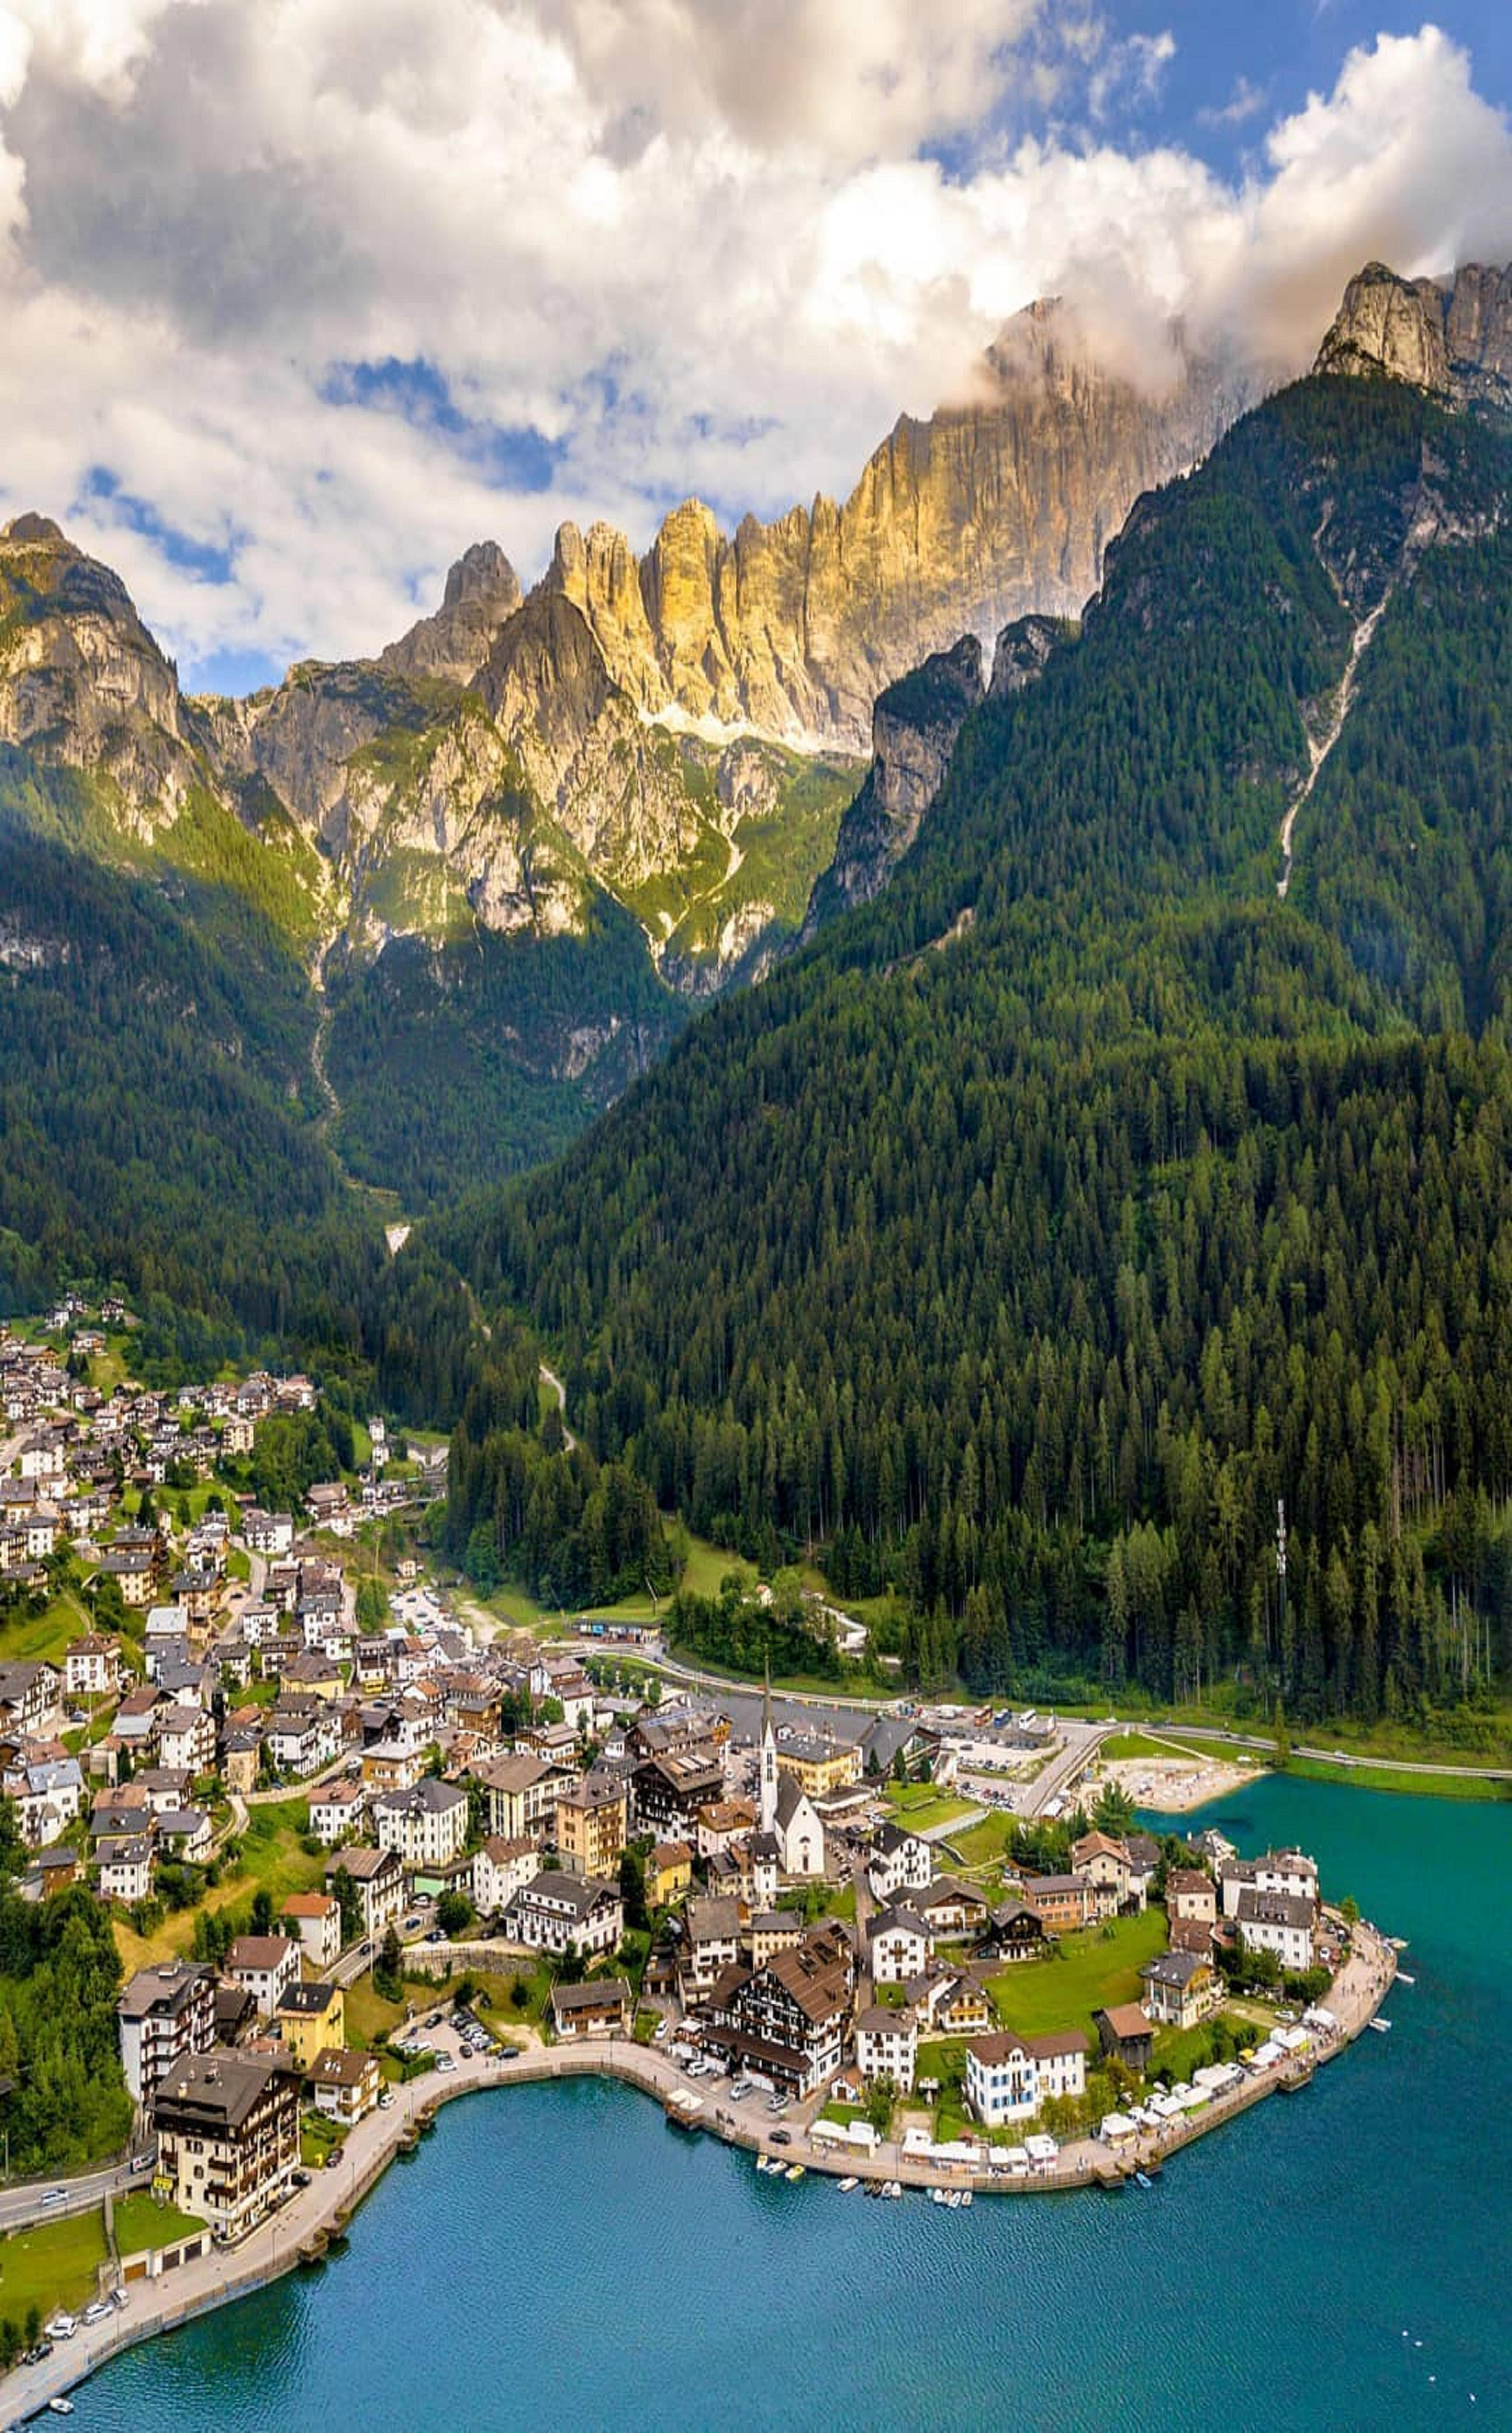 AAlleghe,Italy